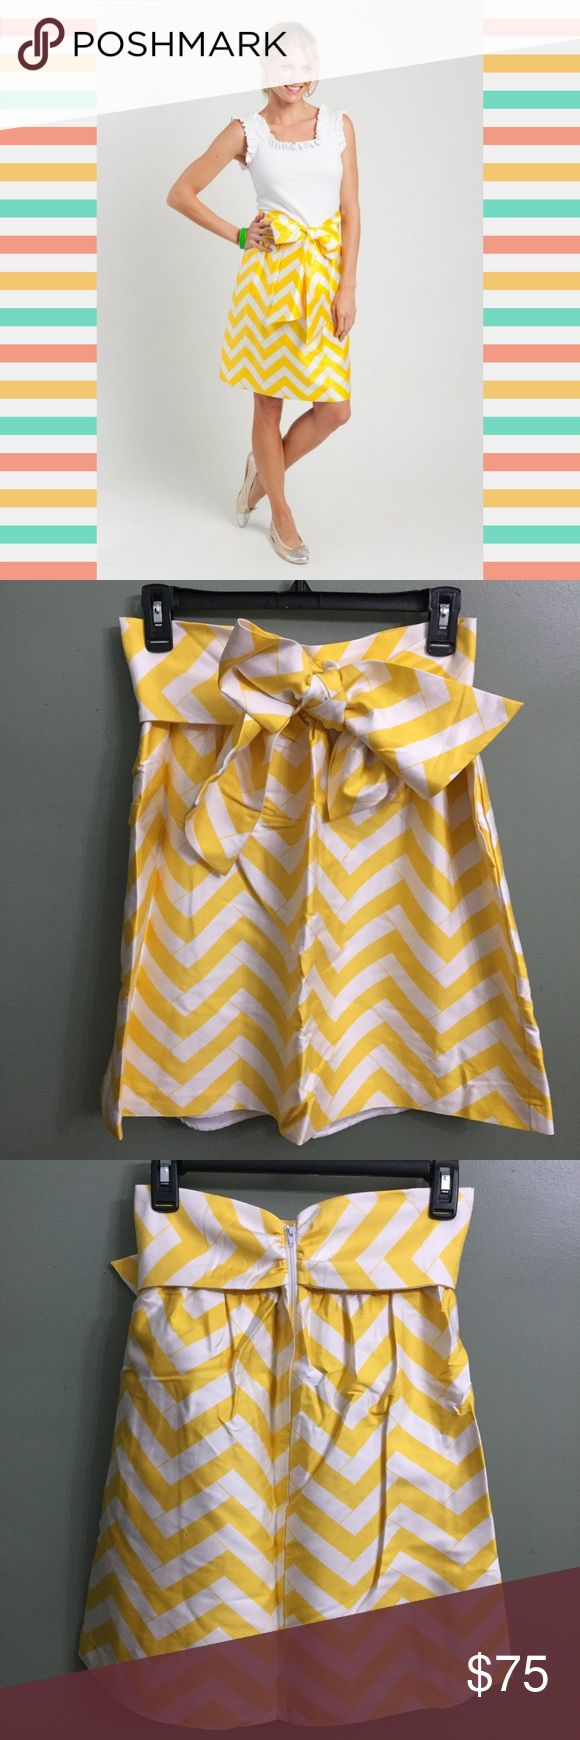 NWT Elizabeth McKay Le Charlot Chevron Skirt, 2 Le Charlot Skirt in Yellow Chevron by Elizabeth McKay - features a flattering, bow-tie waist; has pockets and rear zip closure. 50% wool, 50% silk, Lining: 100% polyester Elizabeth McKay Skirts